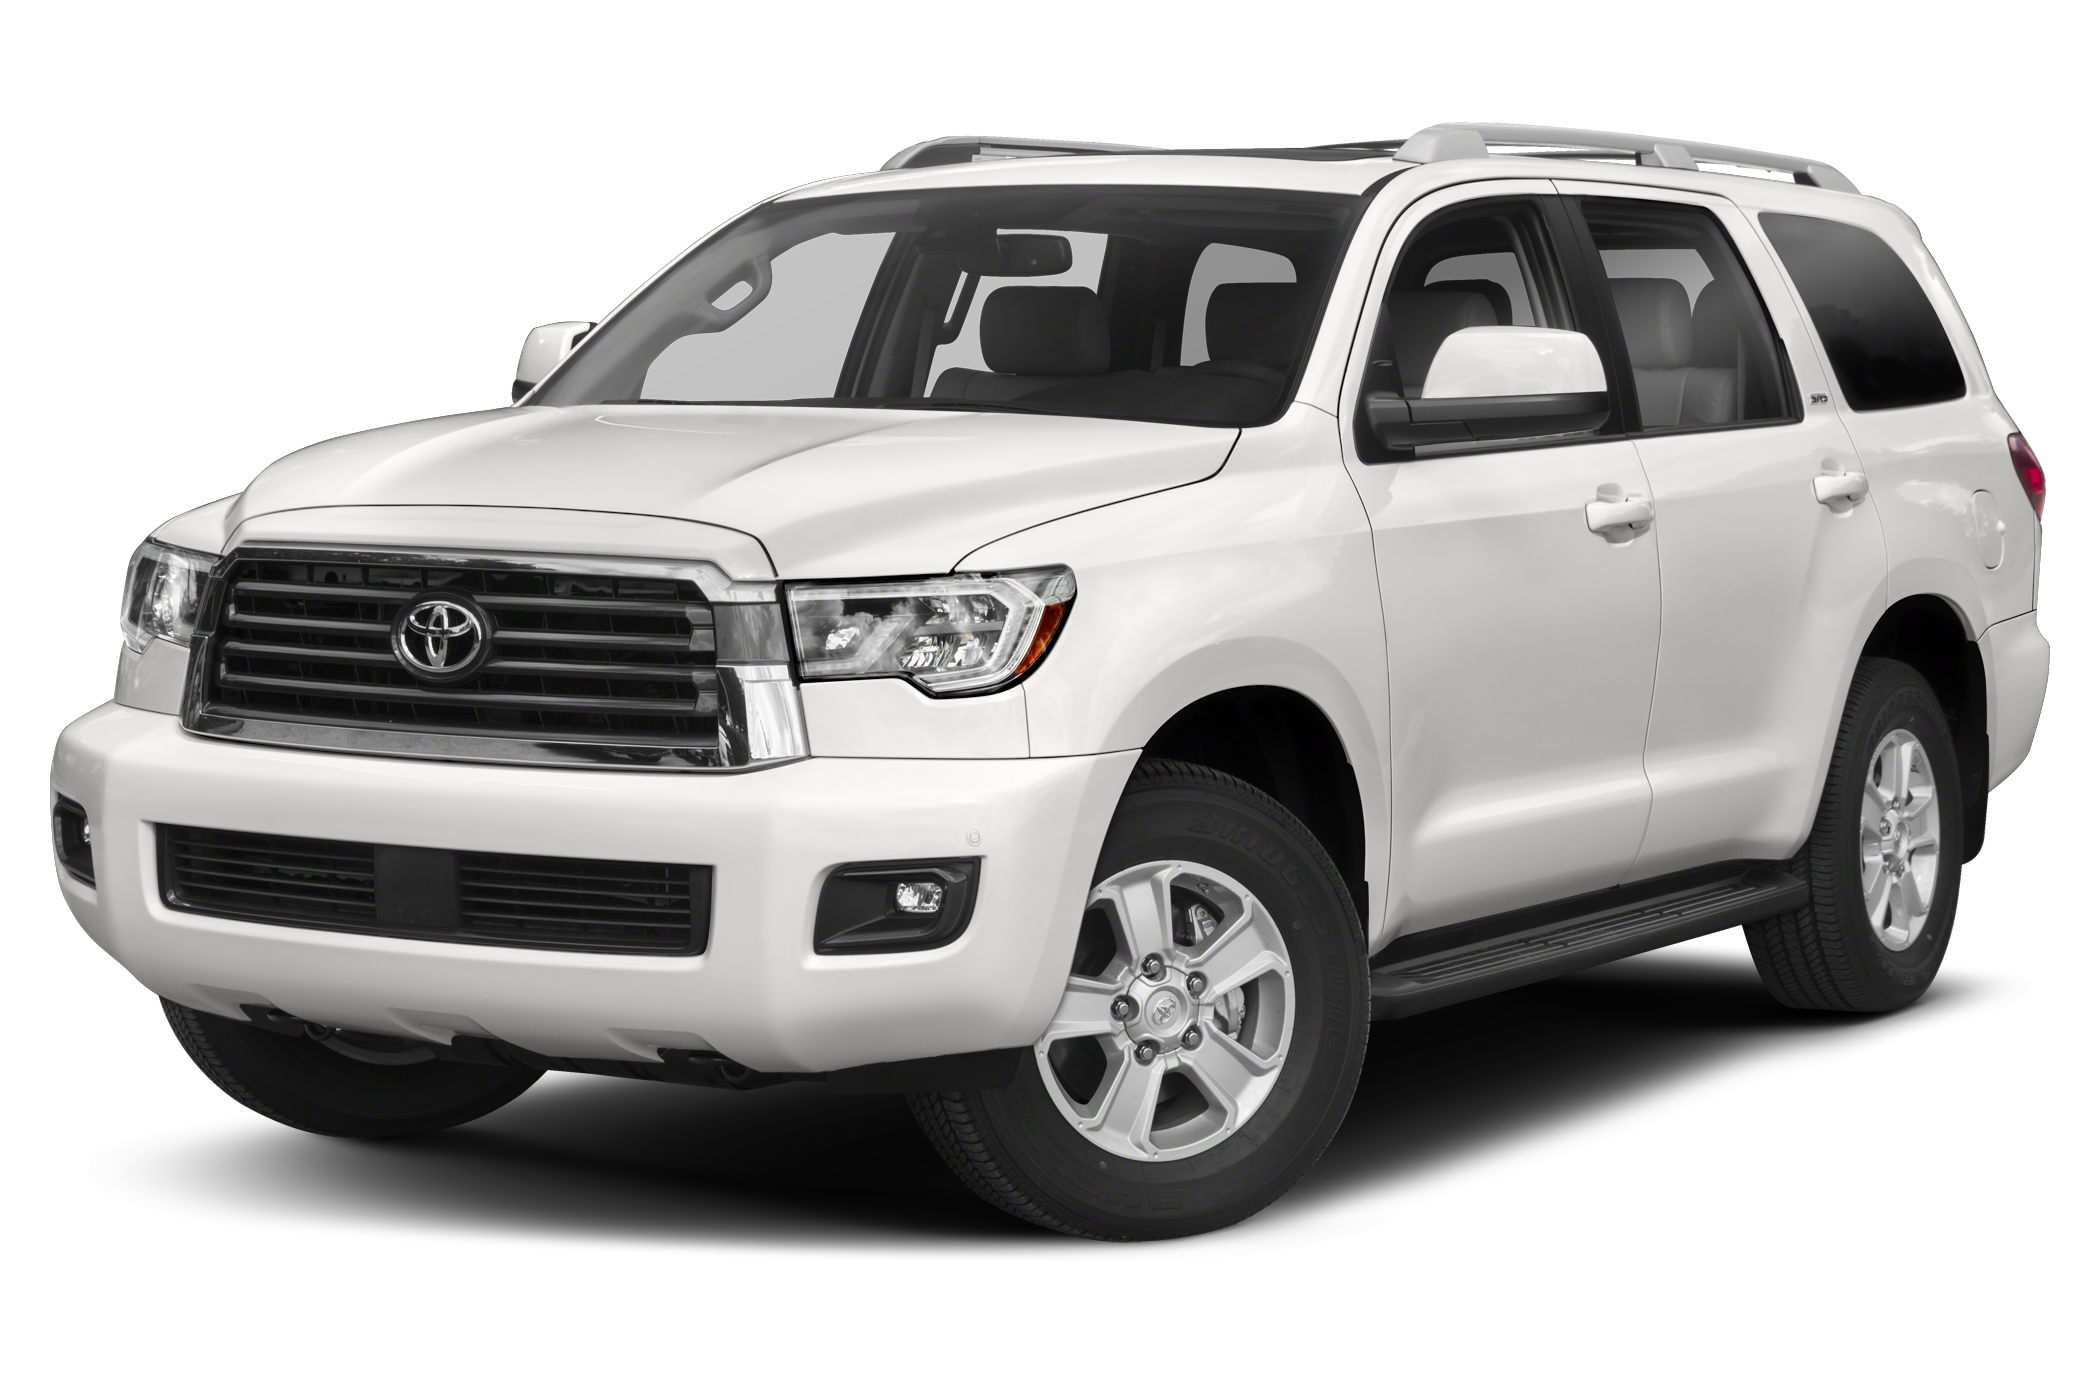 28 All New 2019 Toyota Sequoia Review First Drive for 2019 Toyota Sequoia Review